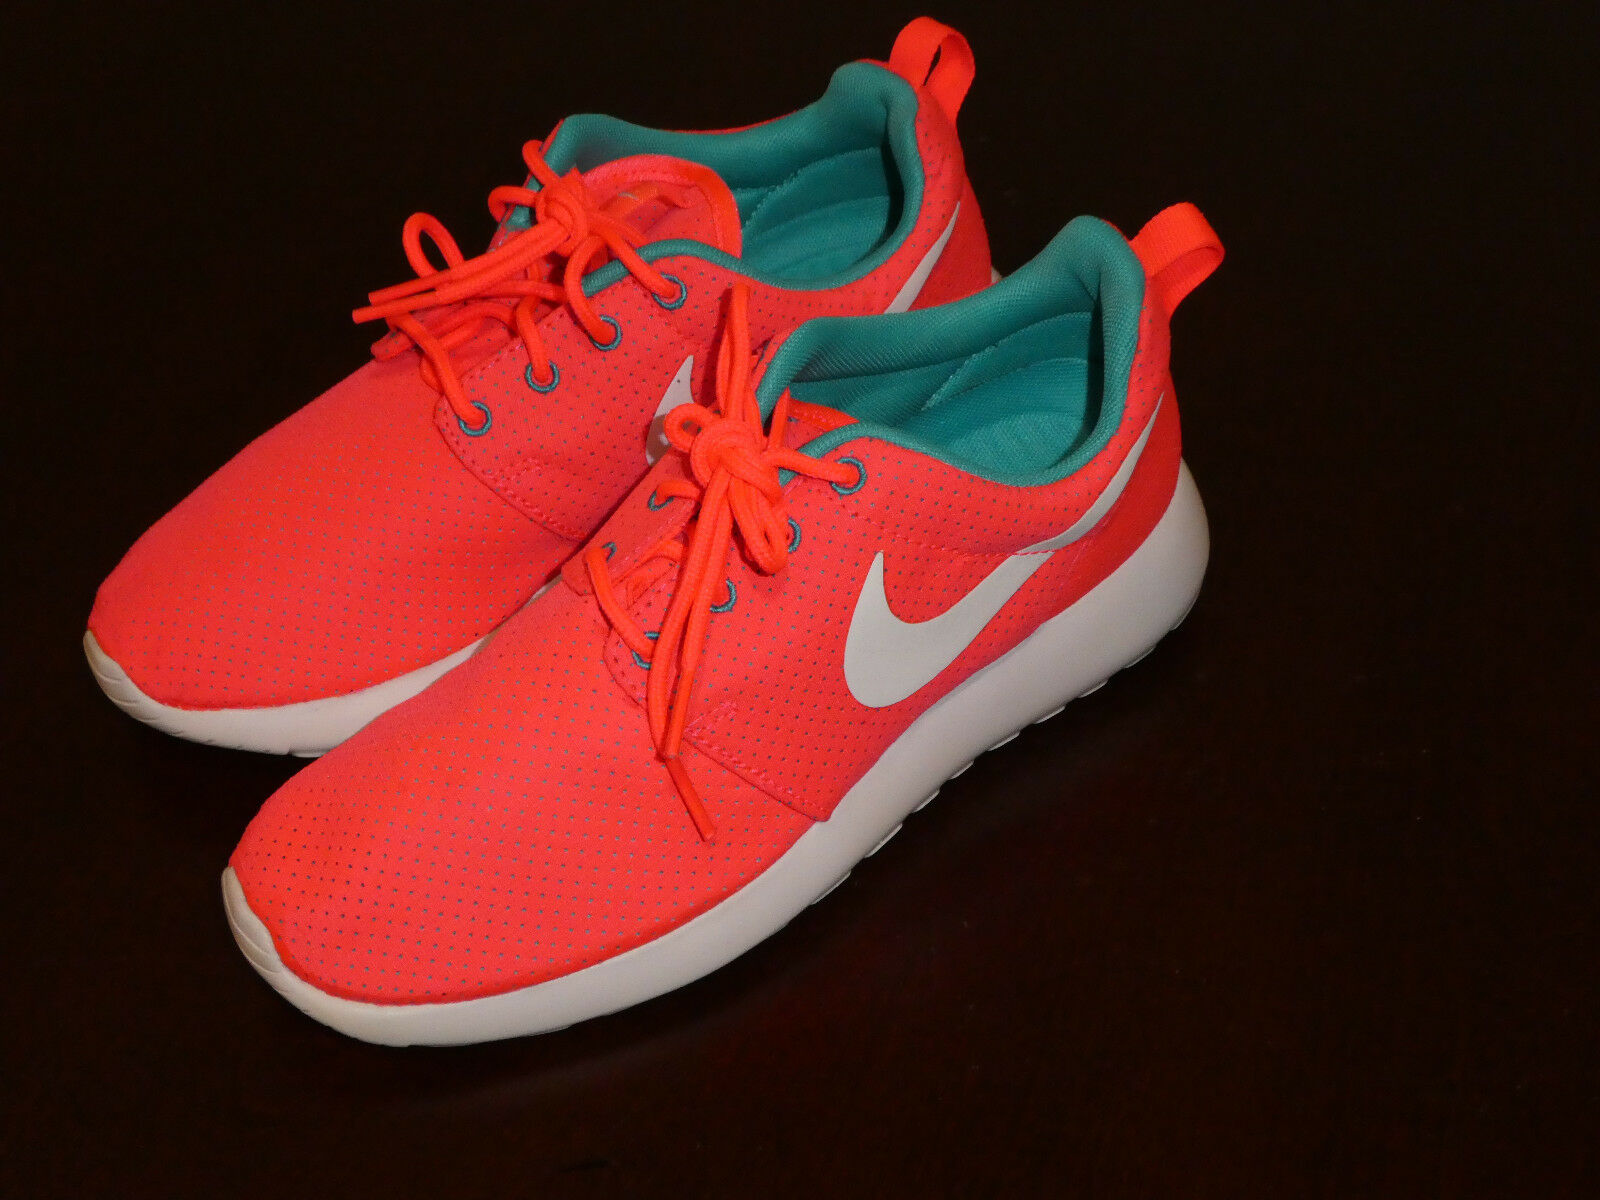 319363eb89e8 Nike Womens 511882 608 Rosherun Roshe Run Size 7 Shoes HYPER Punch ...